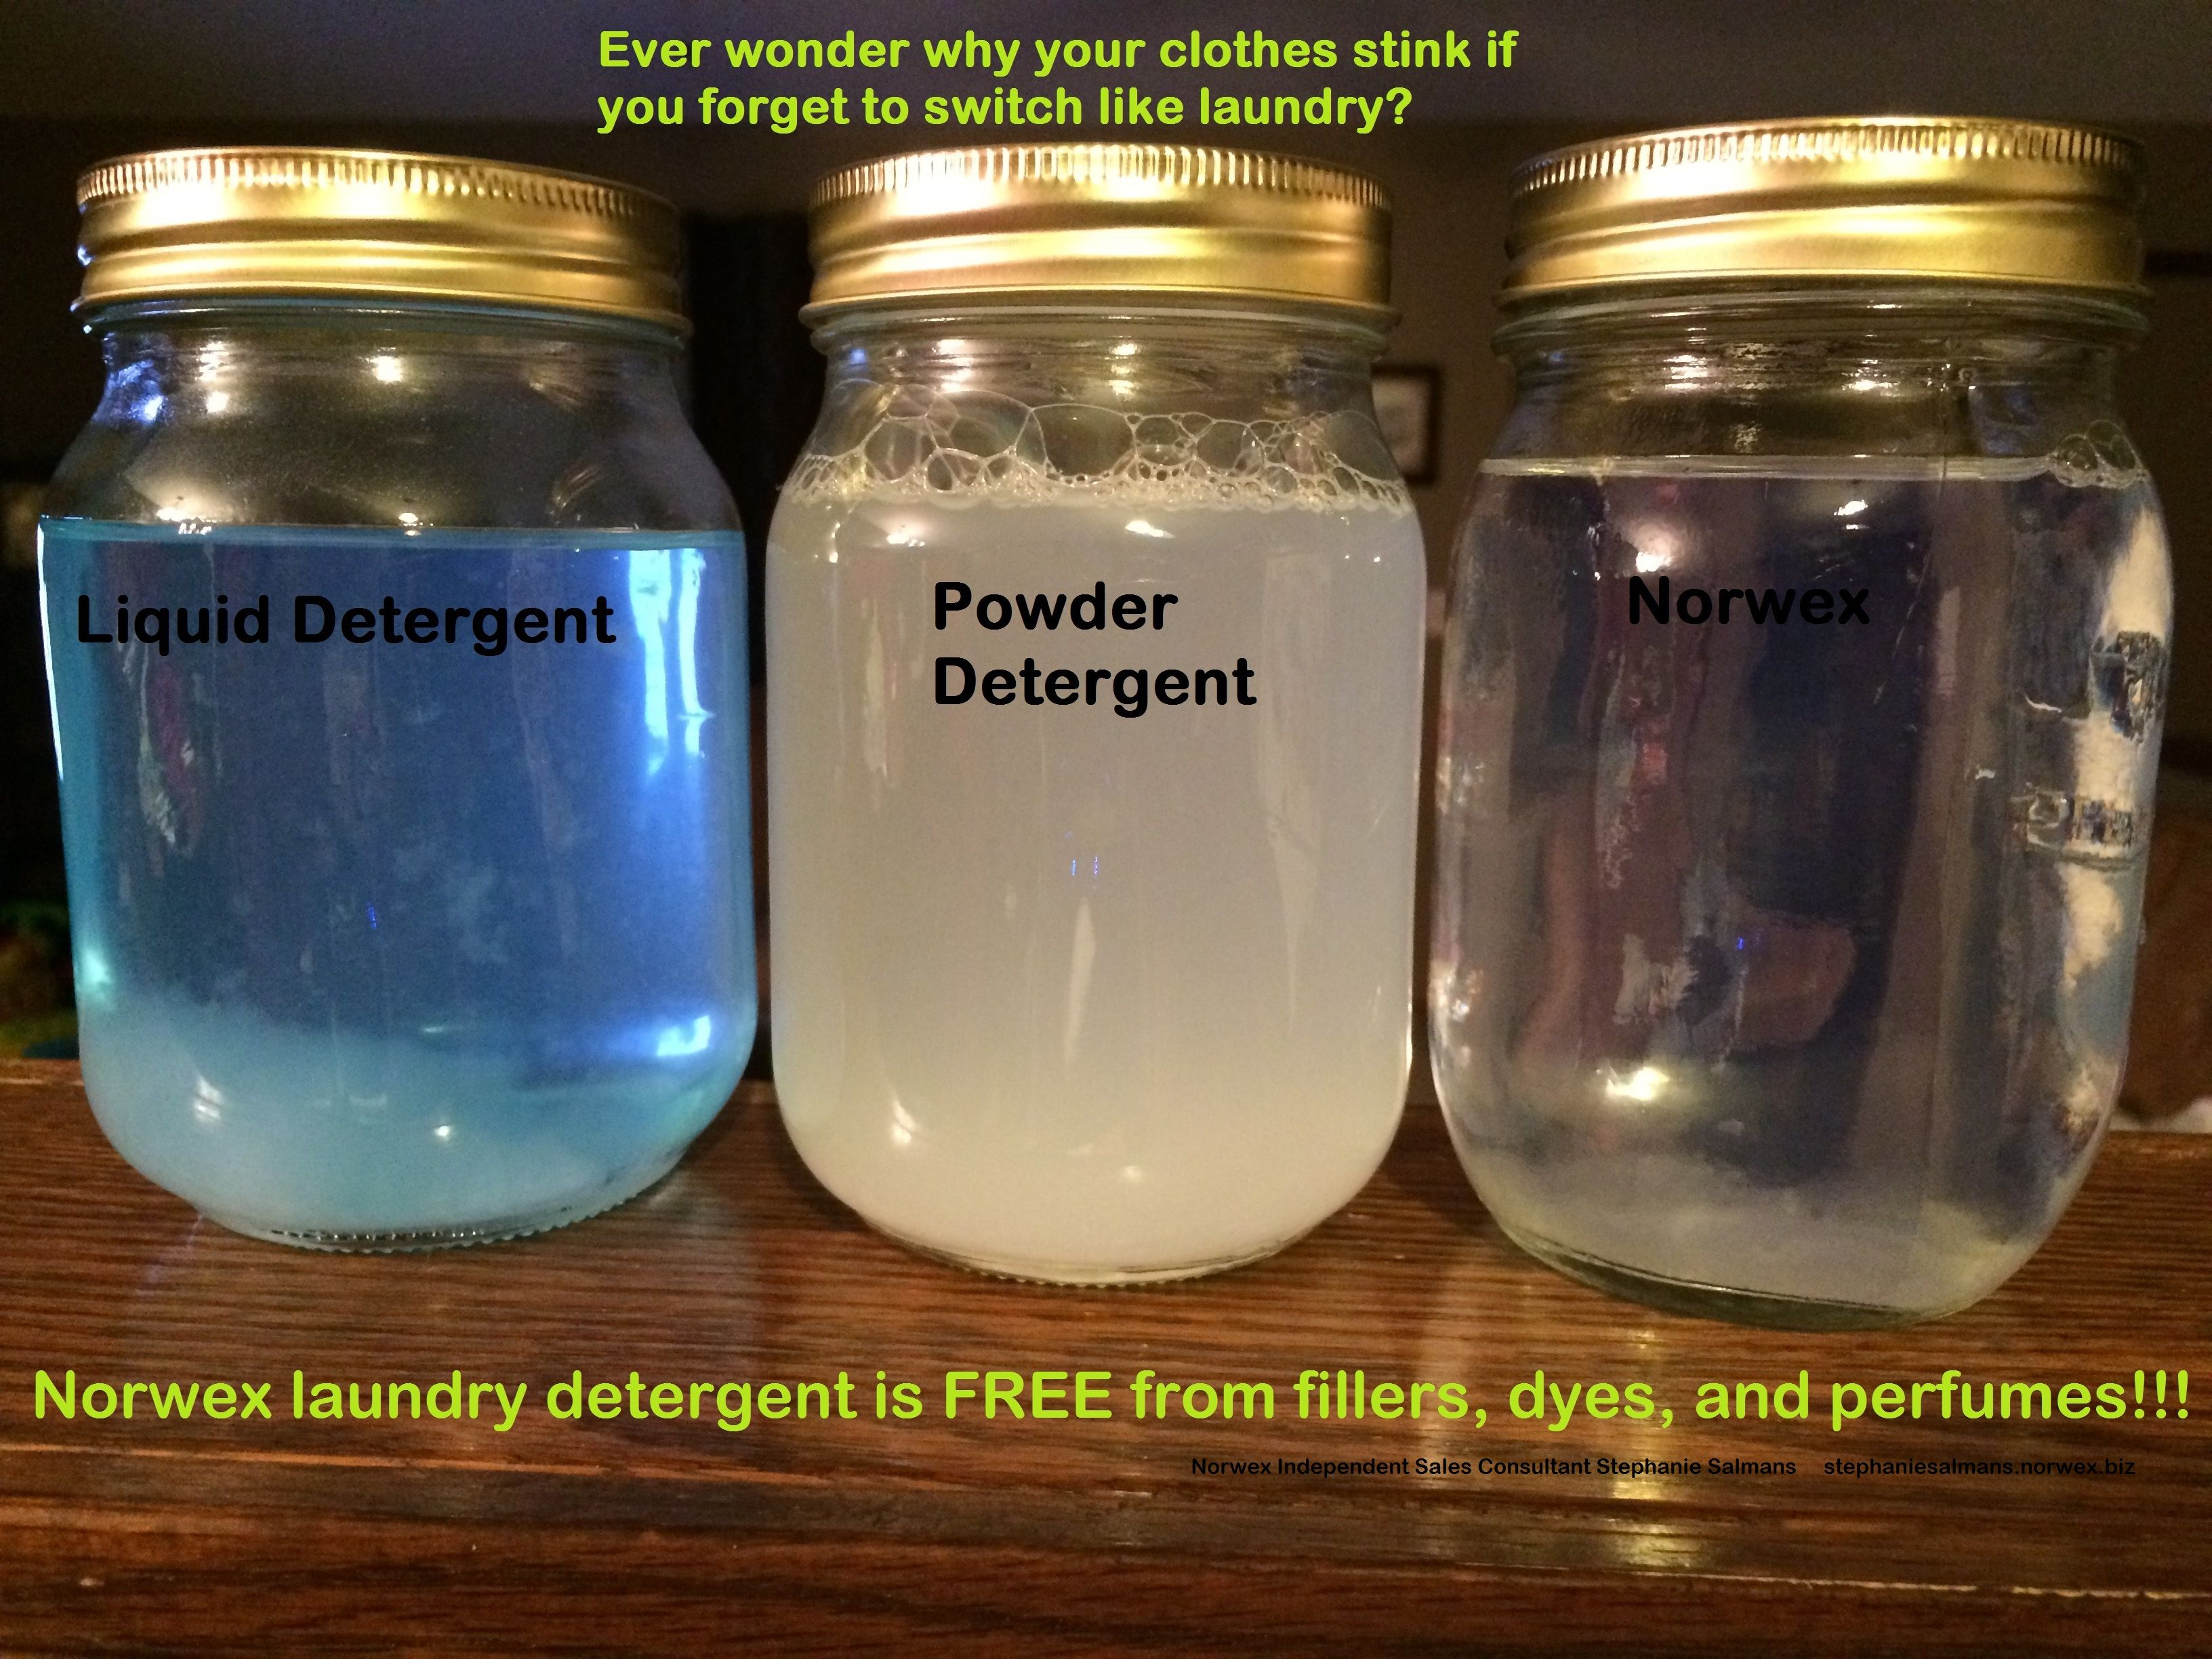 Chemical Free Laundry Detergent Awesome On Removing Stains